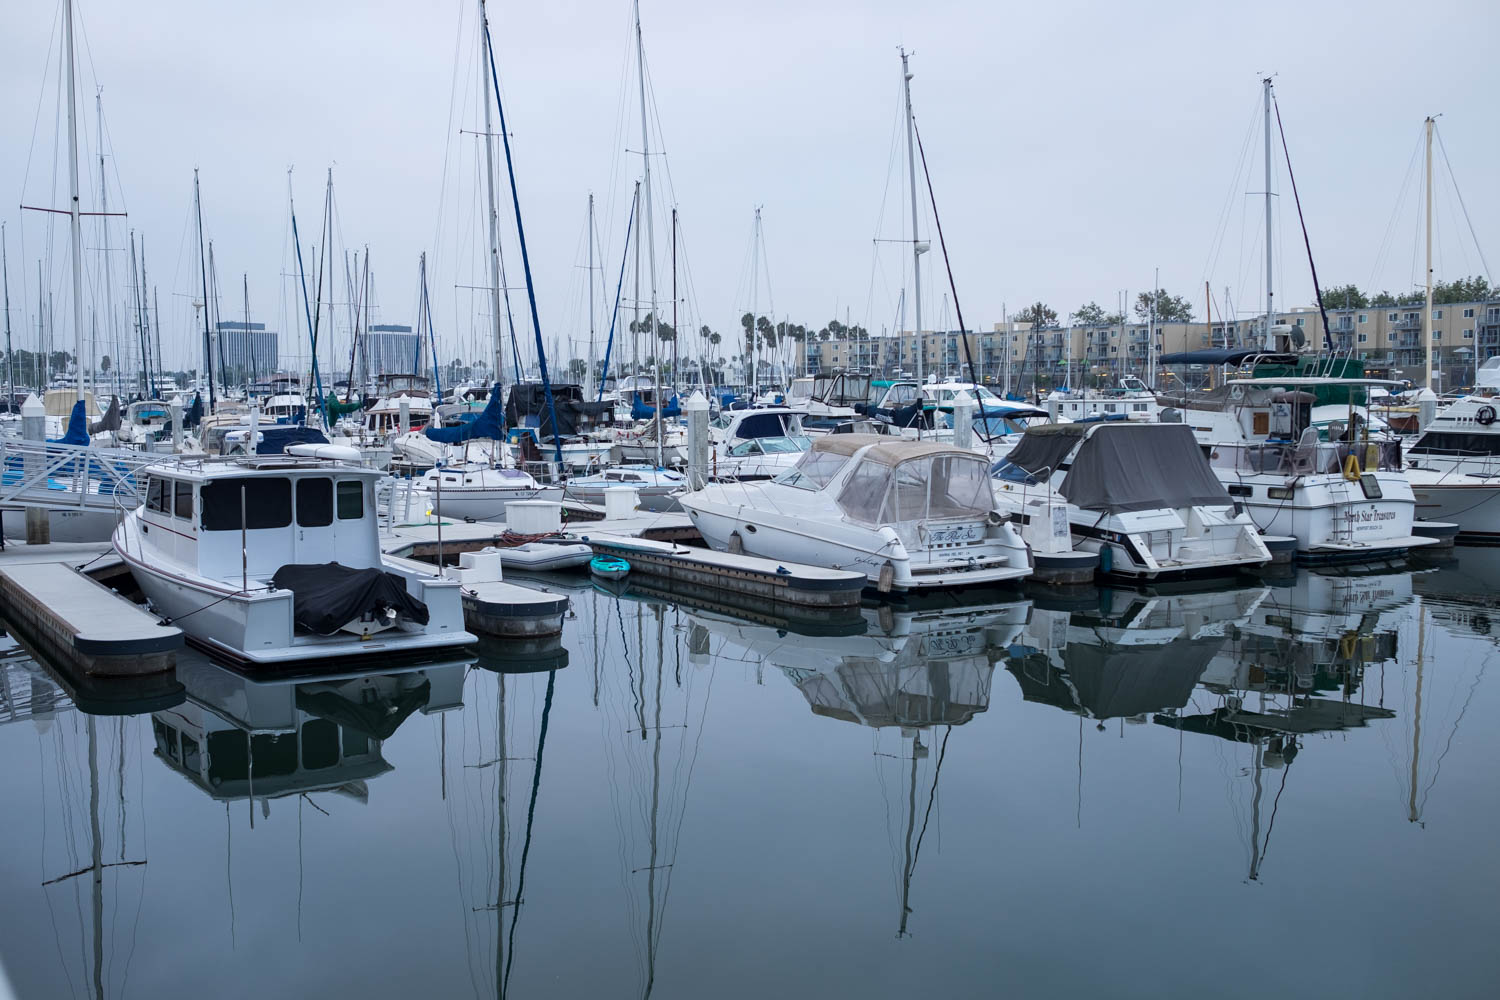 Boats on an overcast morning